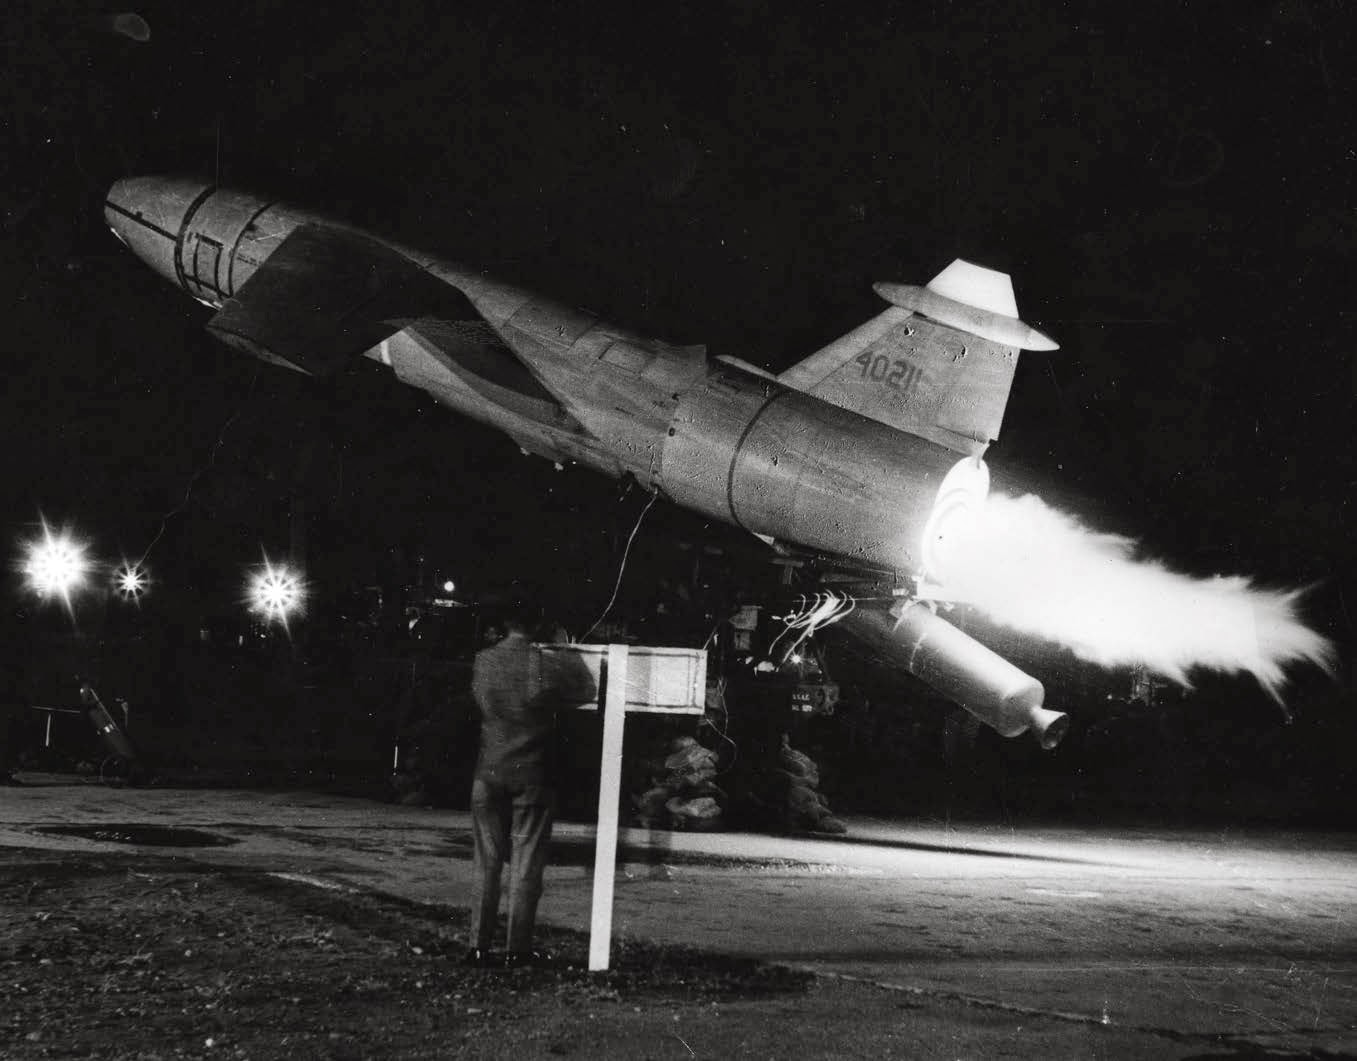 38th tactical missile wing 1959 1966 - HD1357×1061